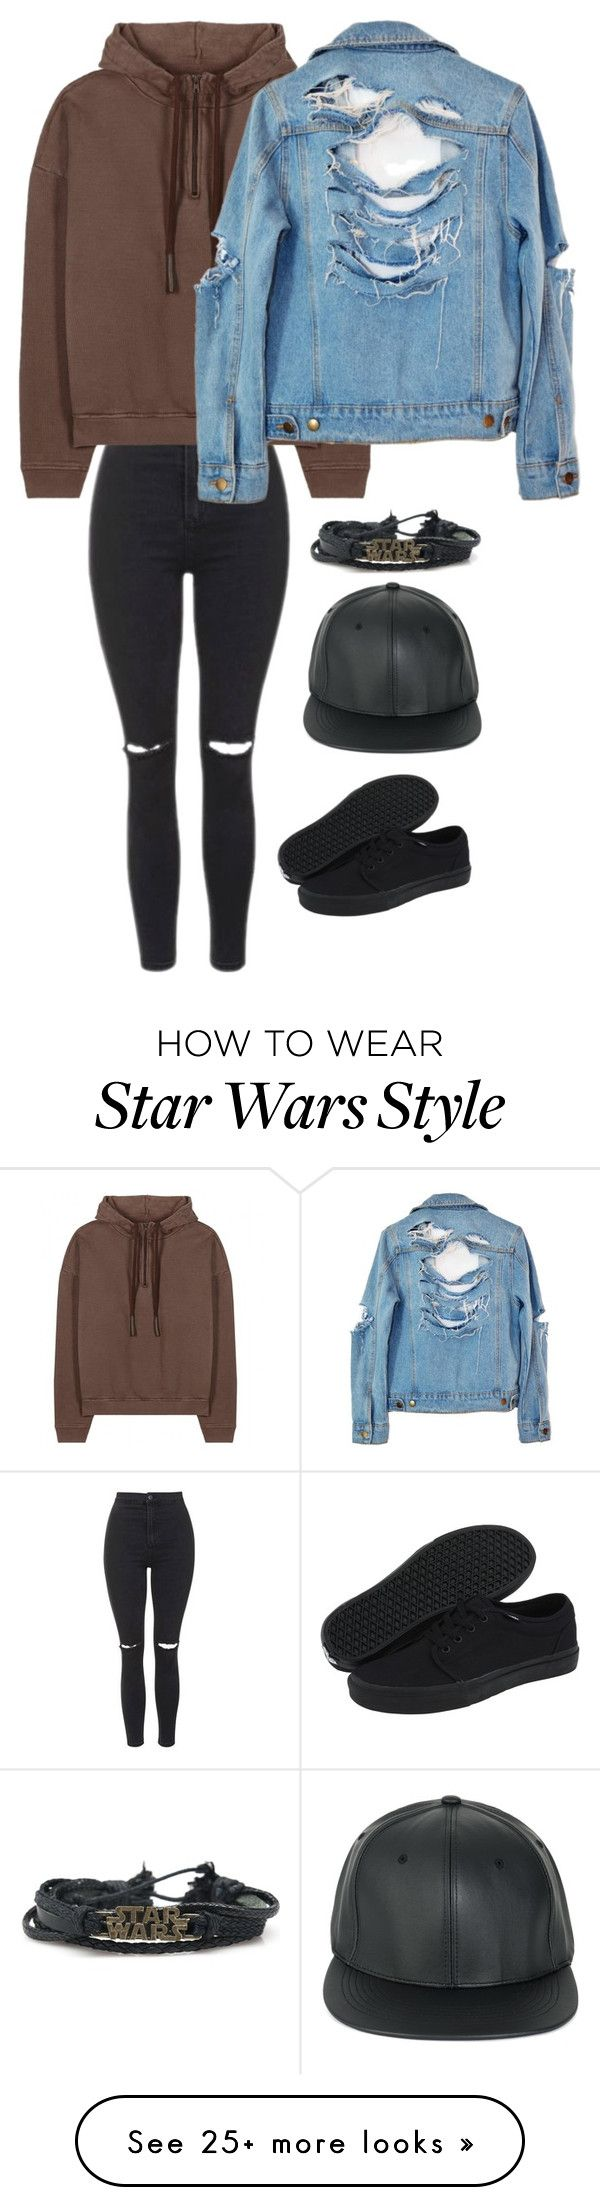 """""""Untitled #253"""" by niki-bogner on Polyvore featuring Topshop, adidas Originals, High Heels Suicide and Vans"""